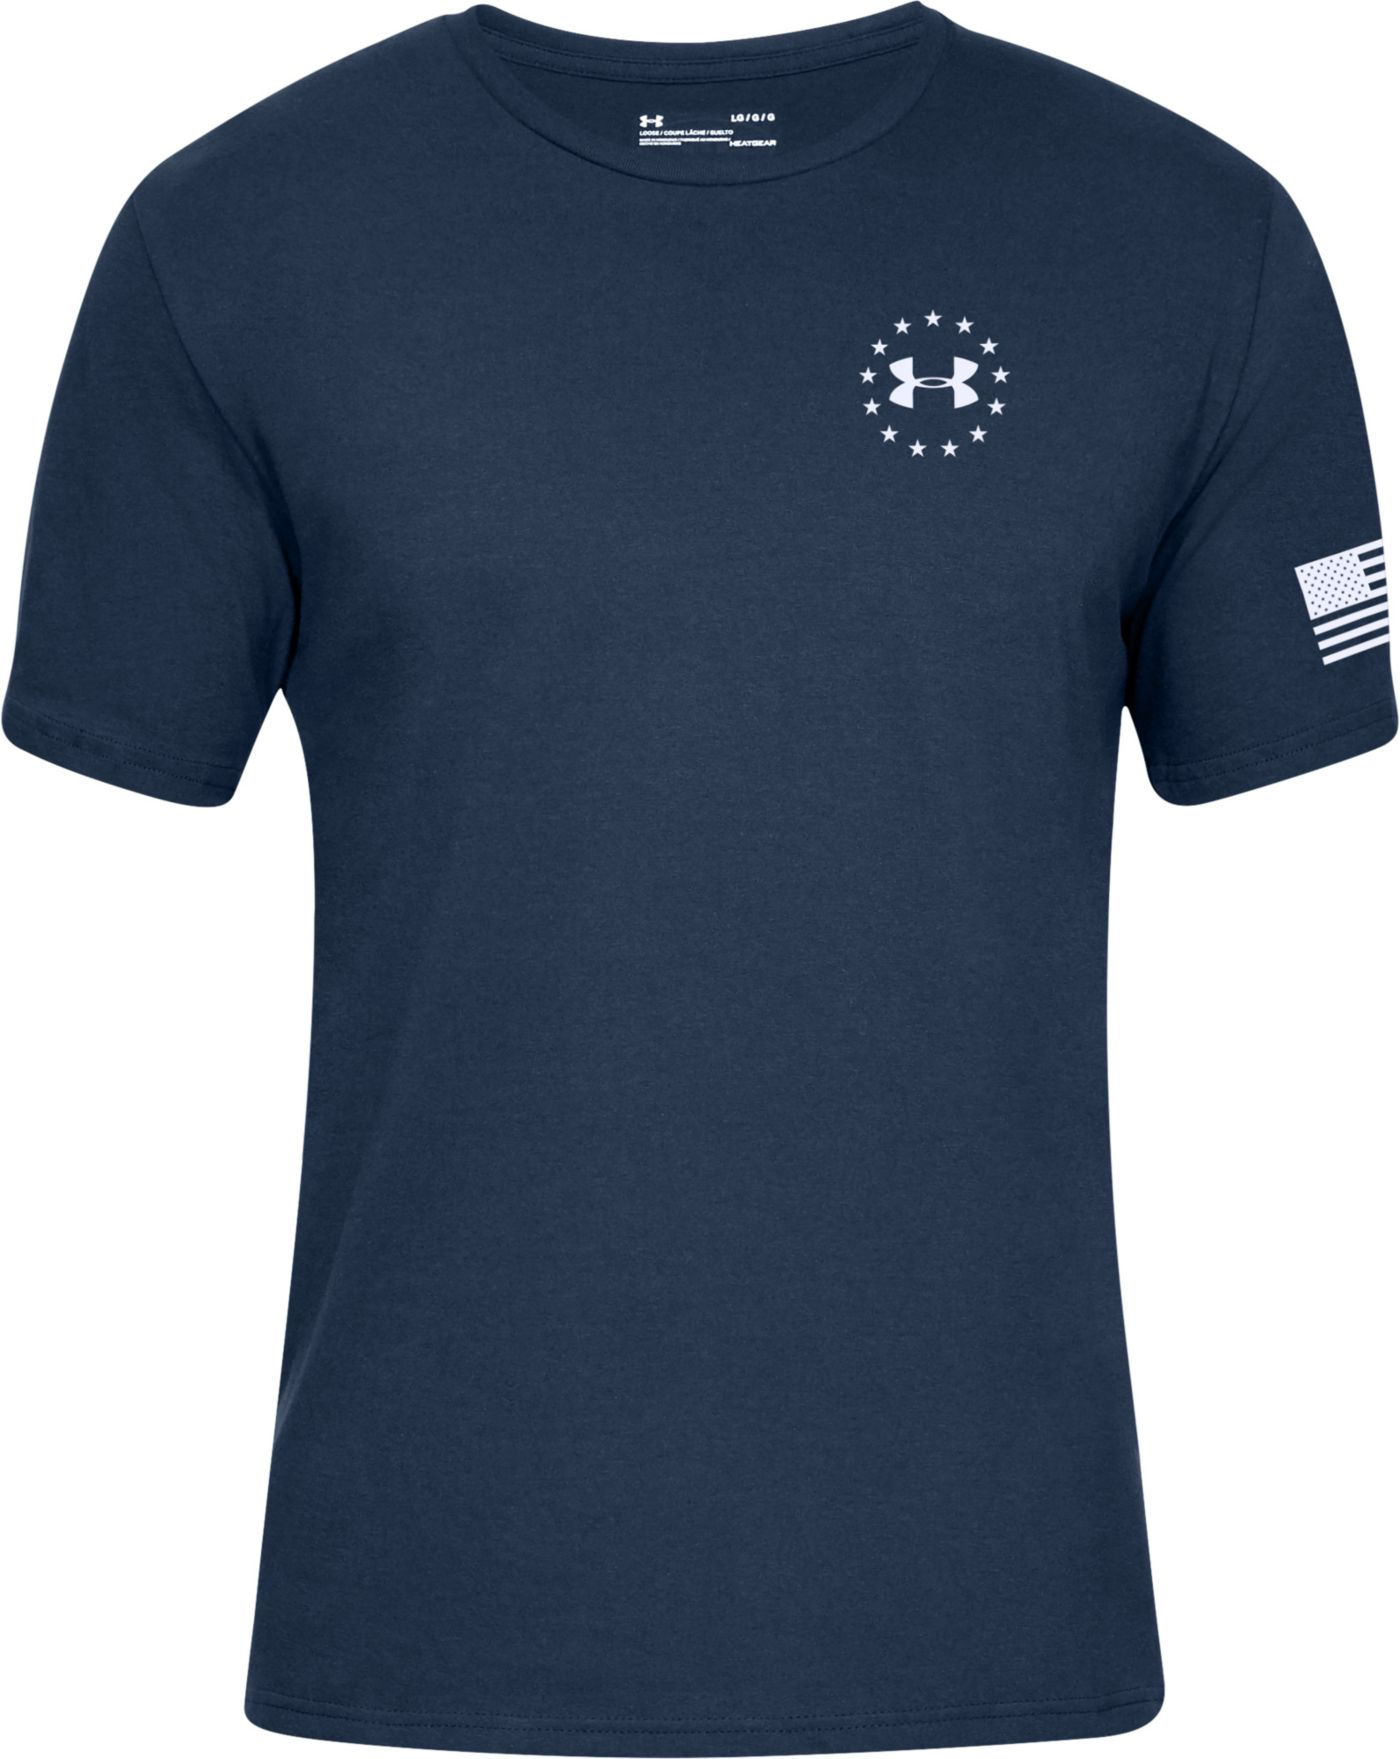 Under Armour Men's Freedom Flag Graphic T-Shirt